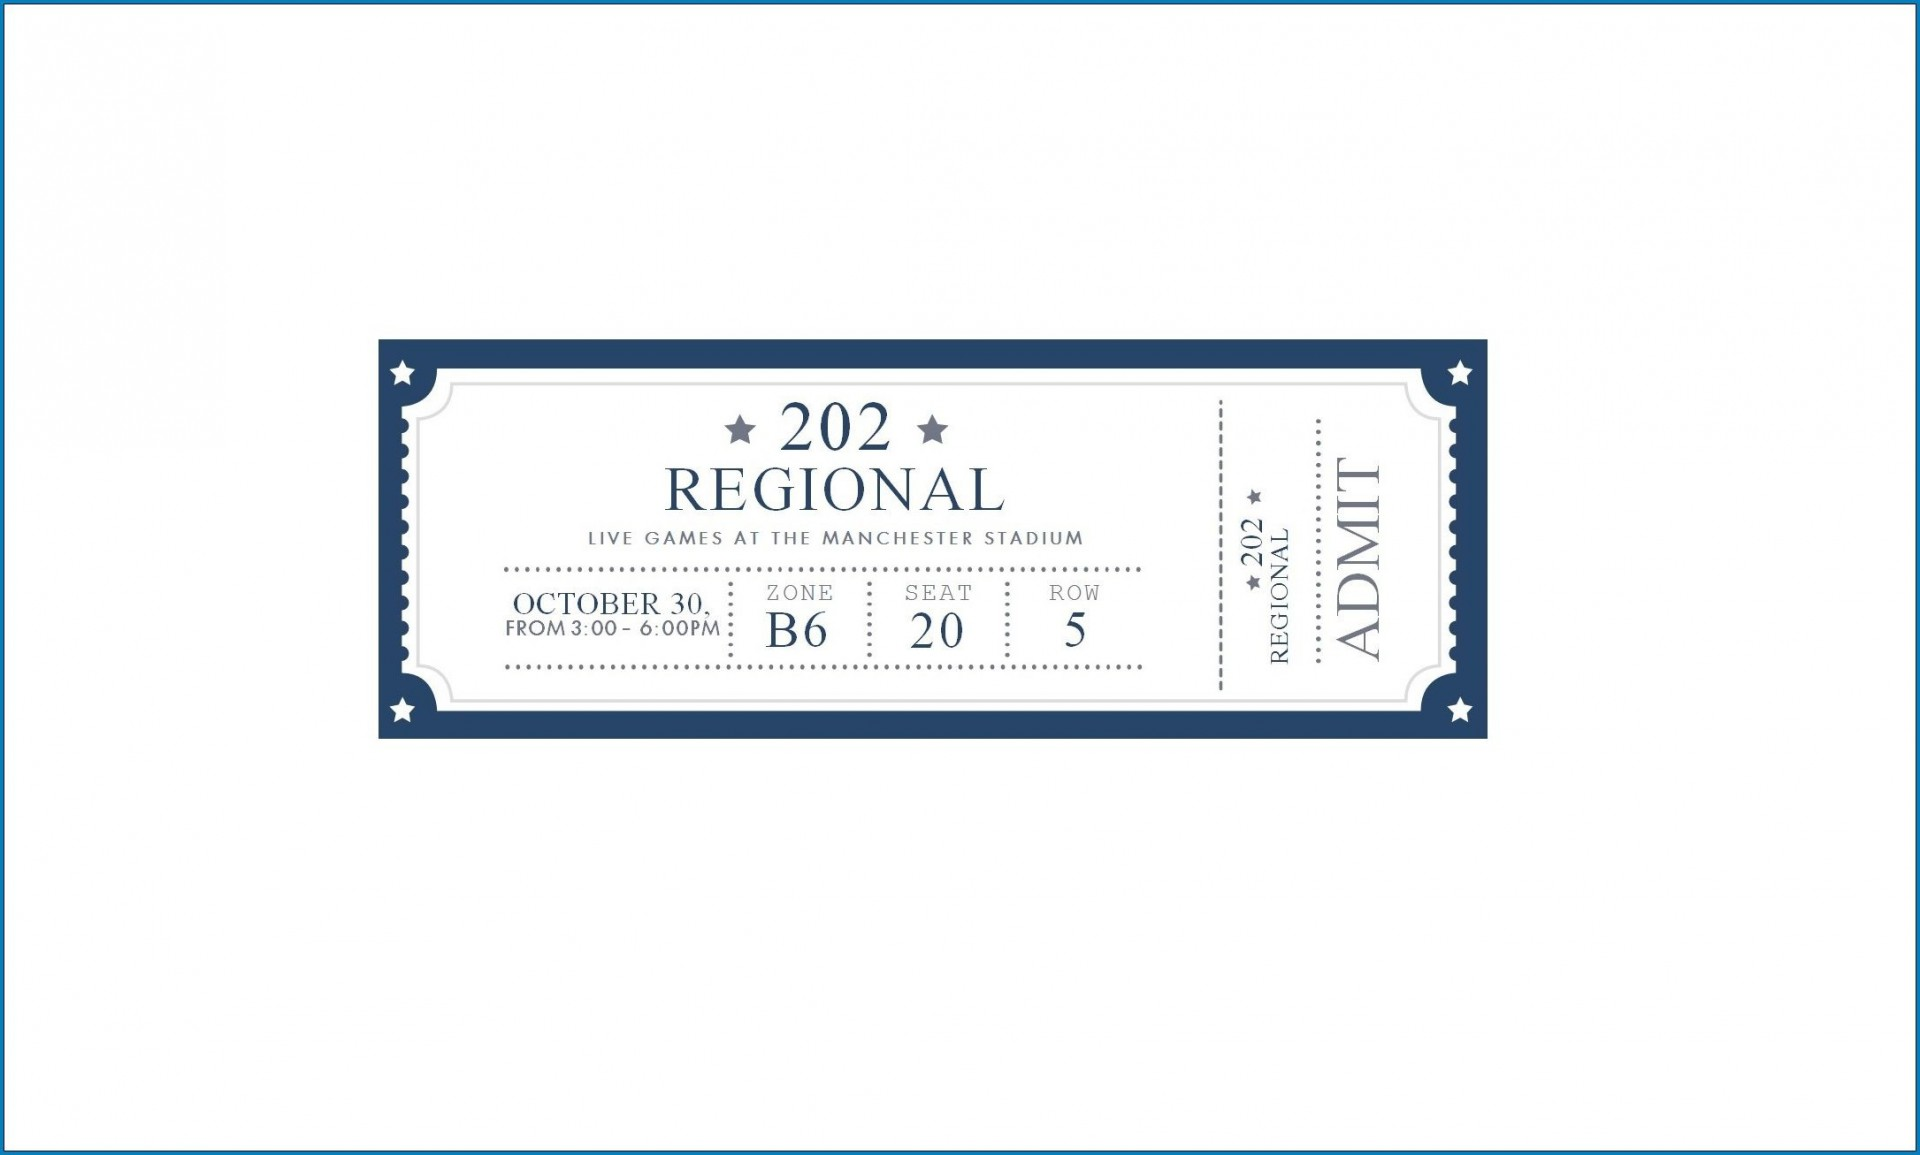 006 Breathtaking Free Event Ticket Template Printable Highest Quality 1920